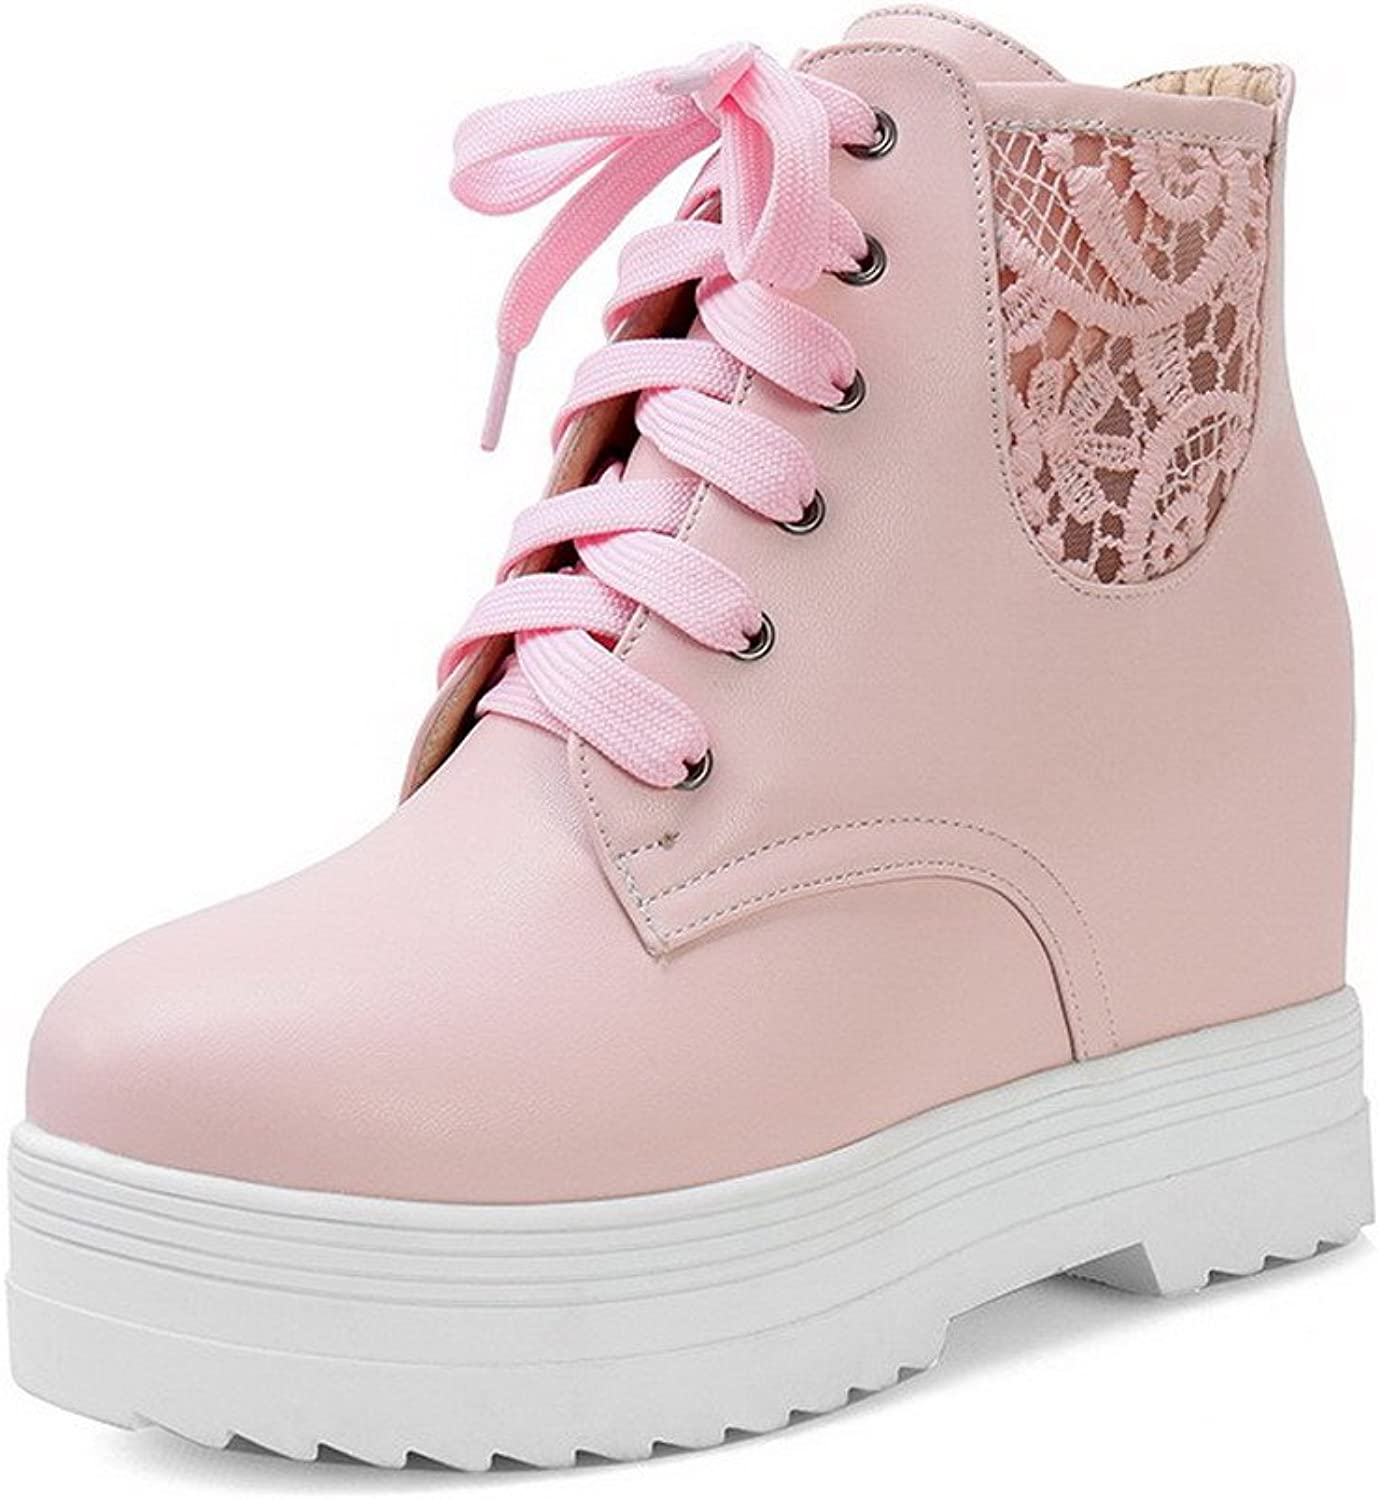 AllhqFashion Women's Kitten-Heels Soft Material Low-Top Solid Lace Up Boots